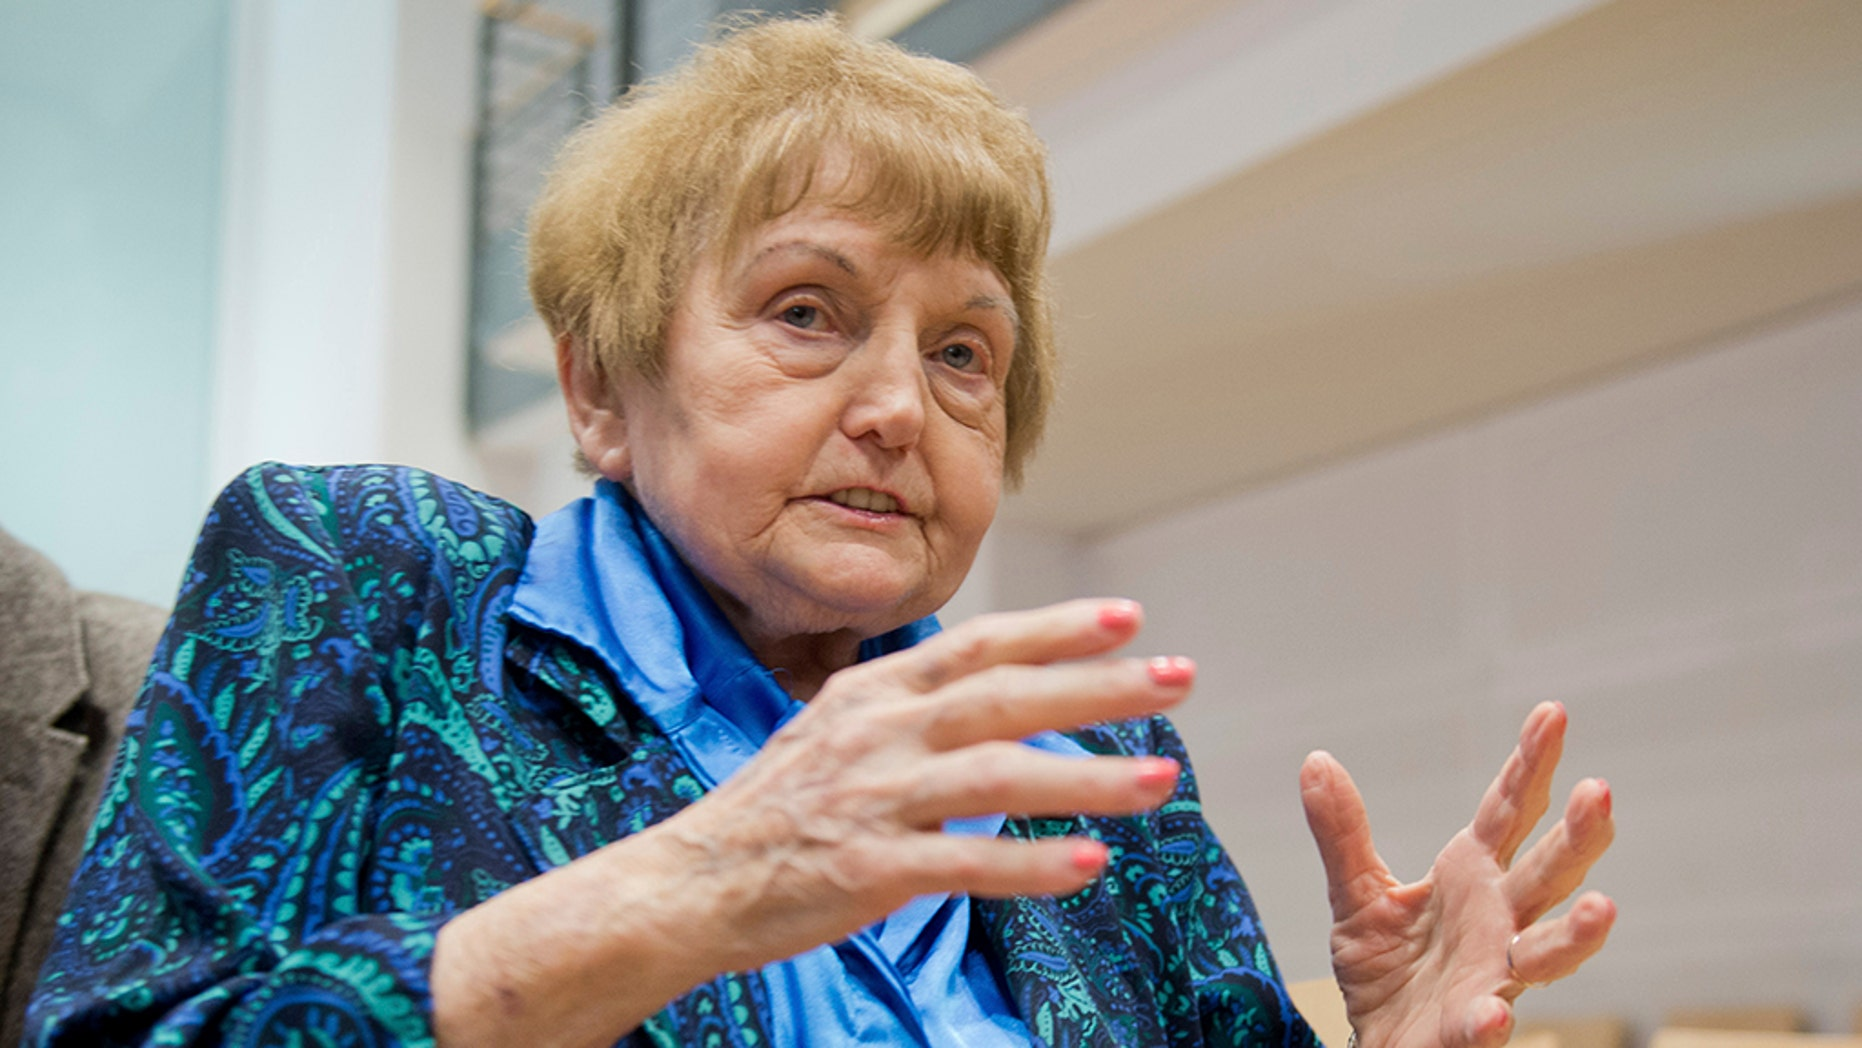 Holocaust survivor and forgiveness advocate Eva Kor dies aged 85